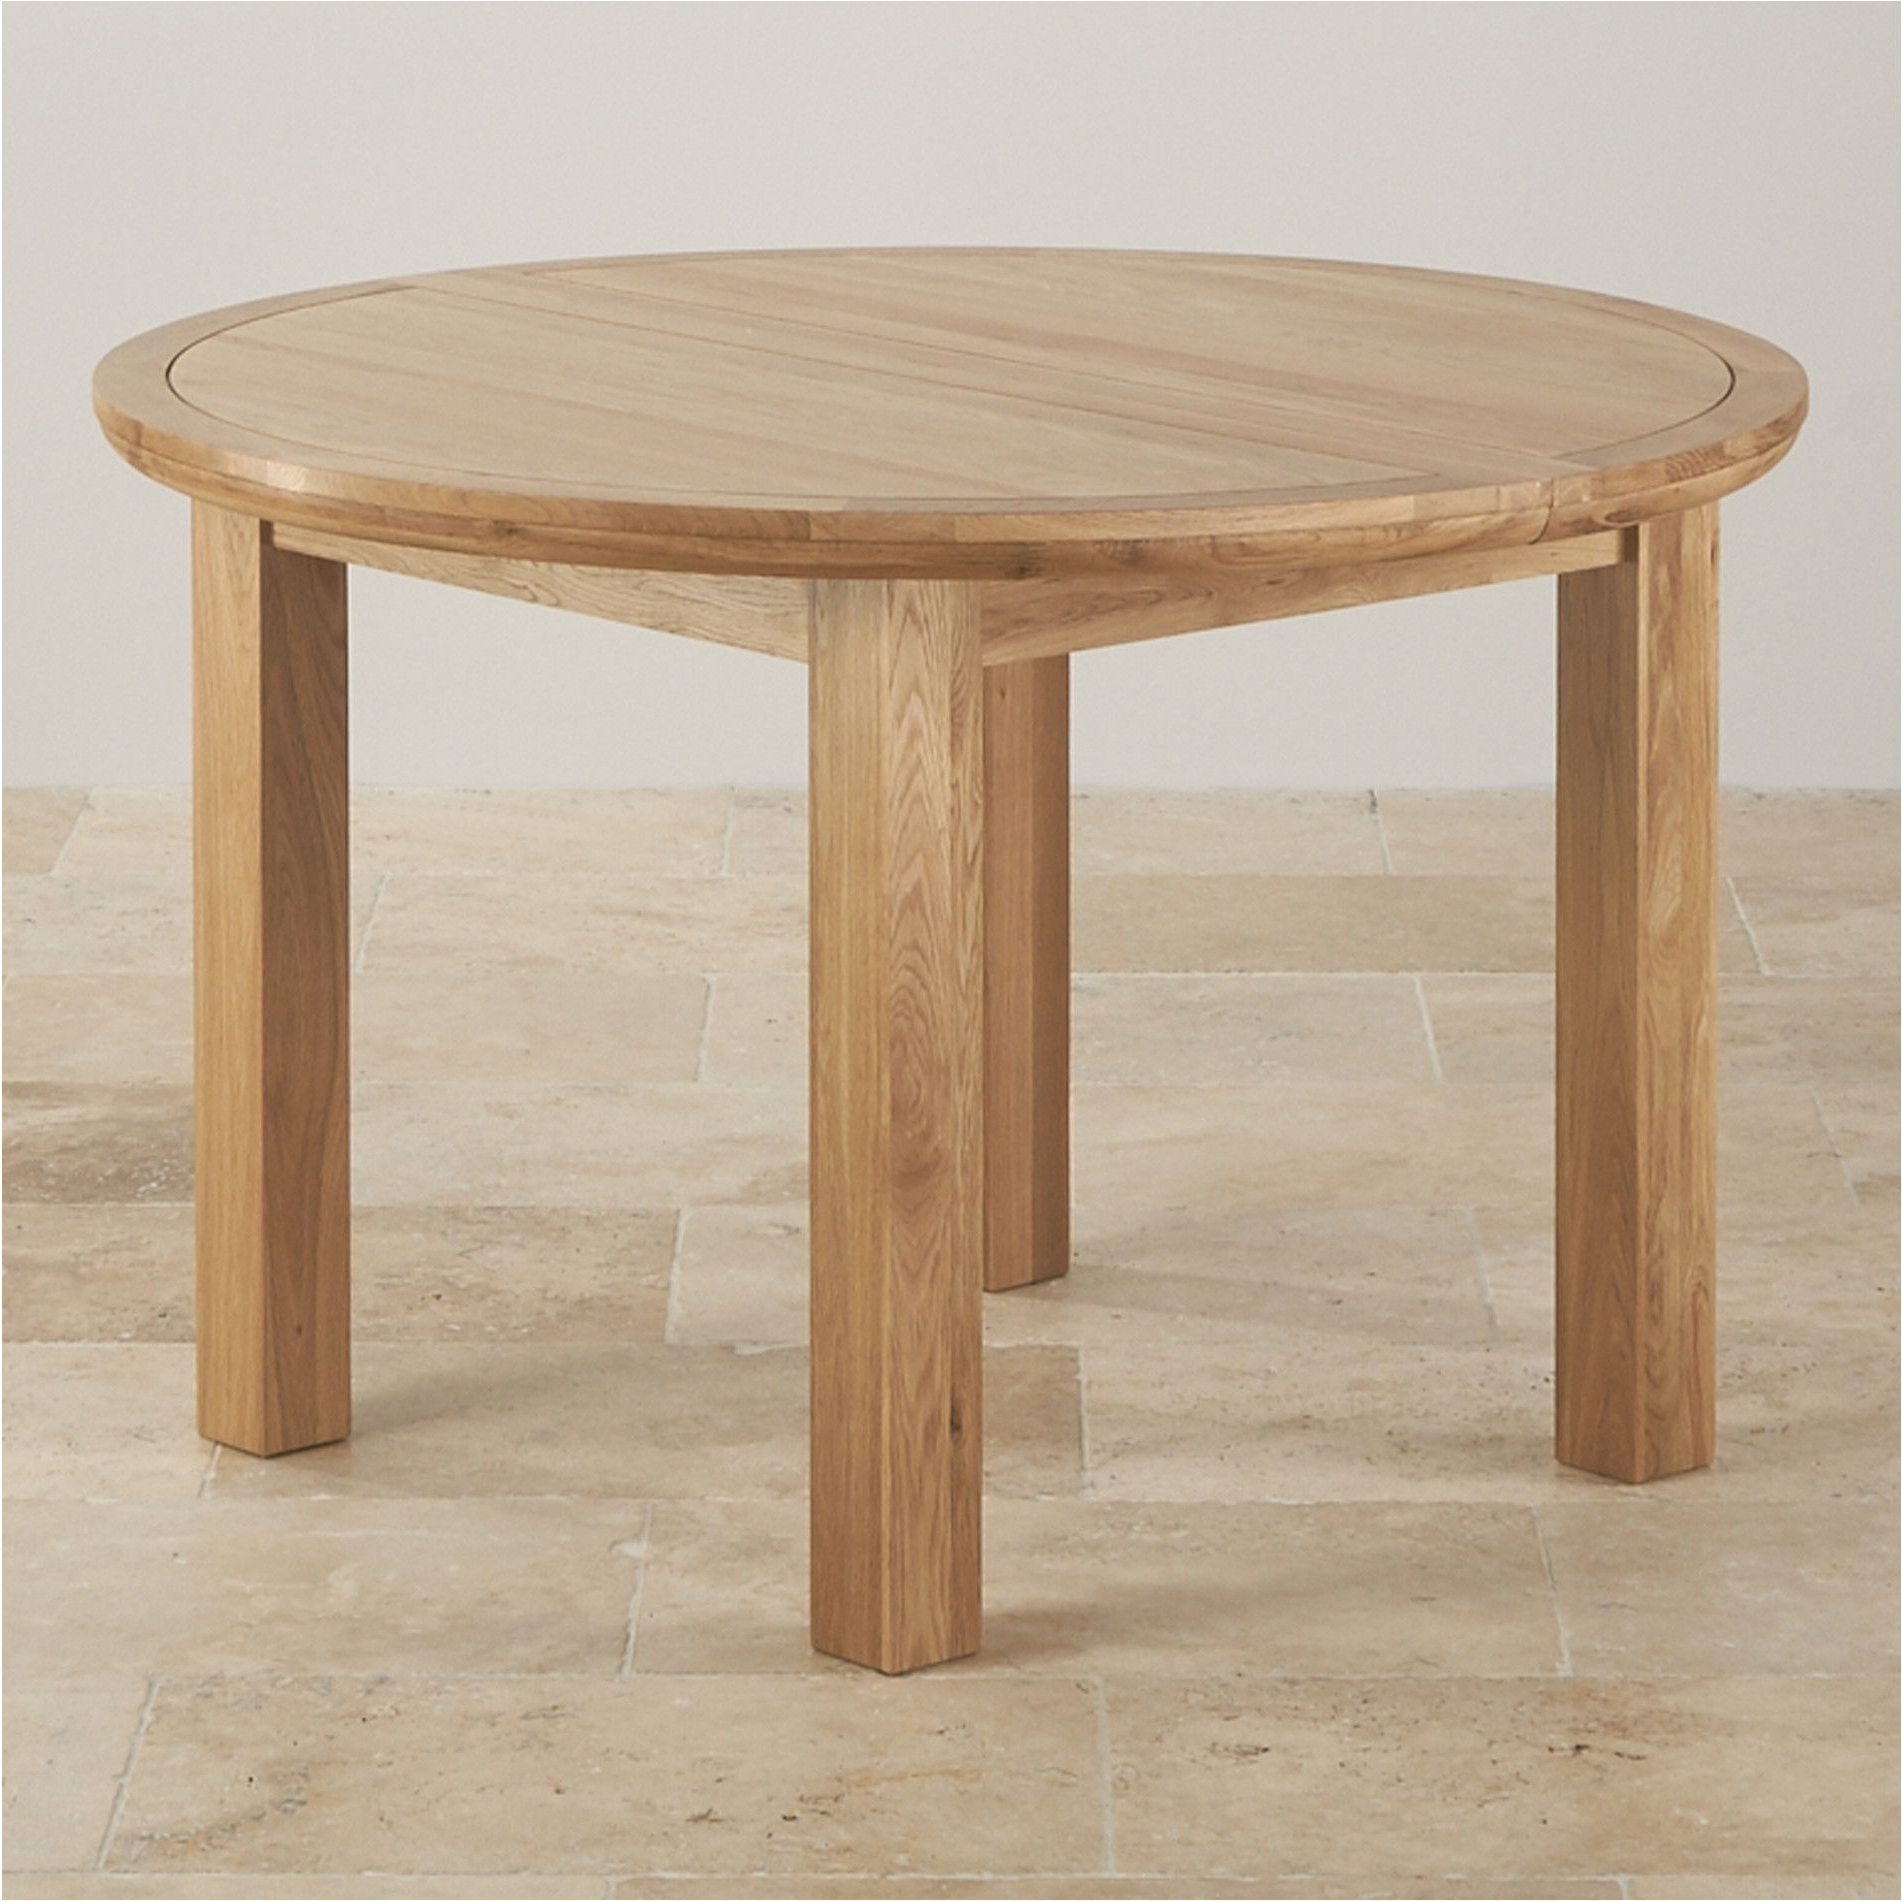 Newest Marvelous Stunning Round Oak Dining Tables Pertaining To House With Oak Dining Tables (View 18 of 25)